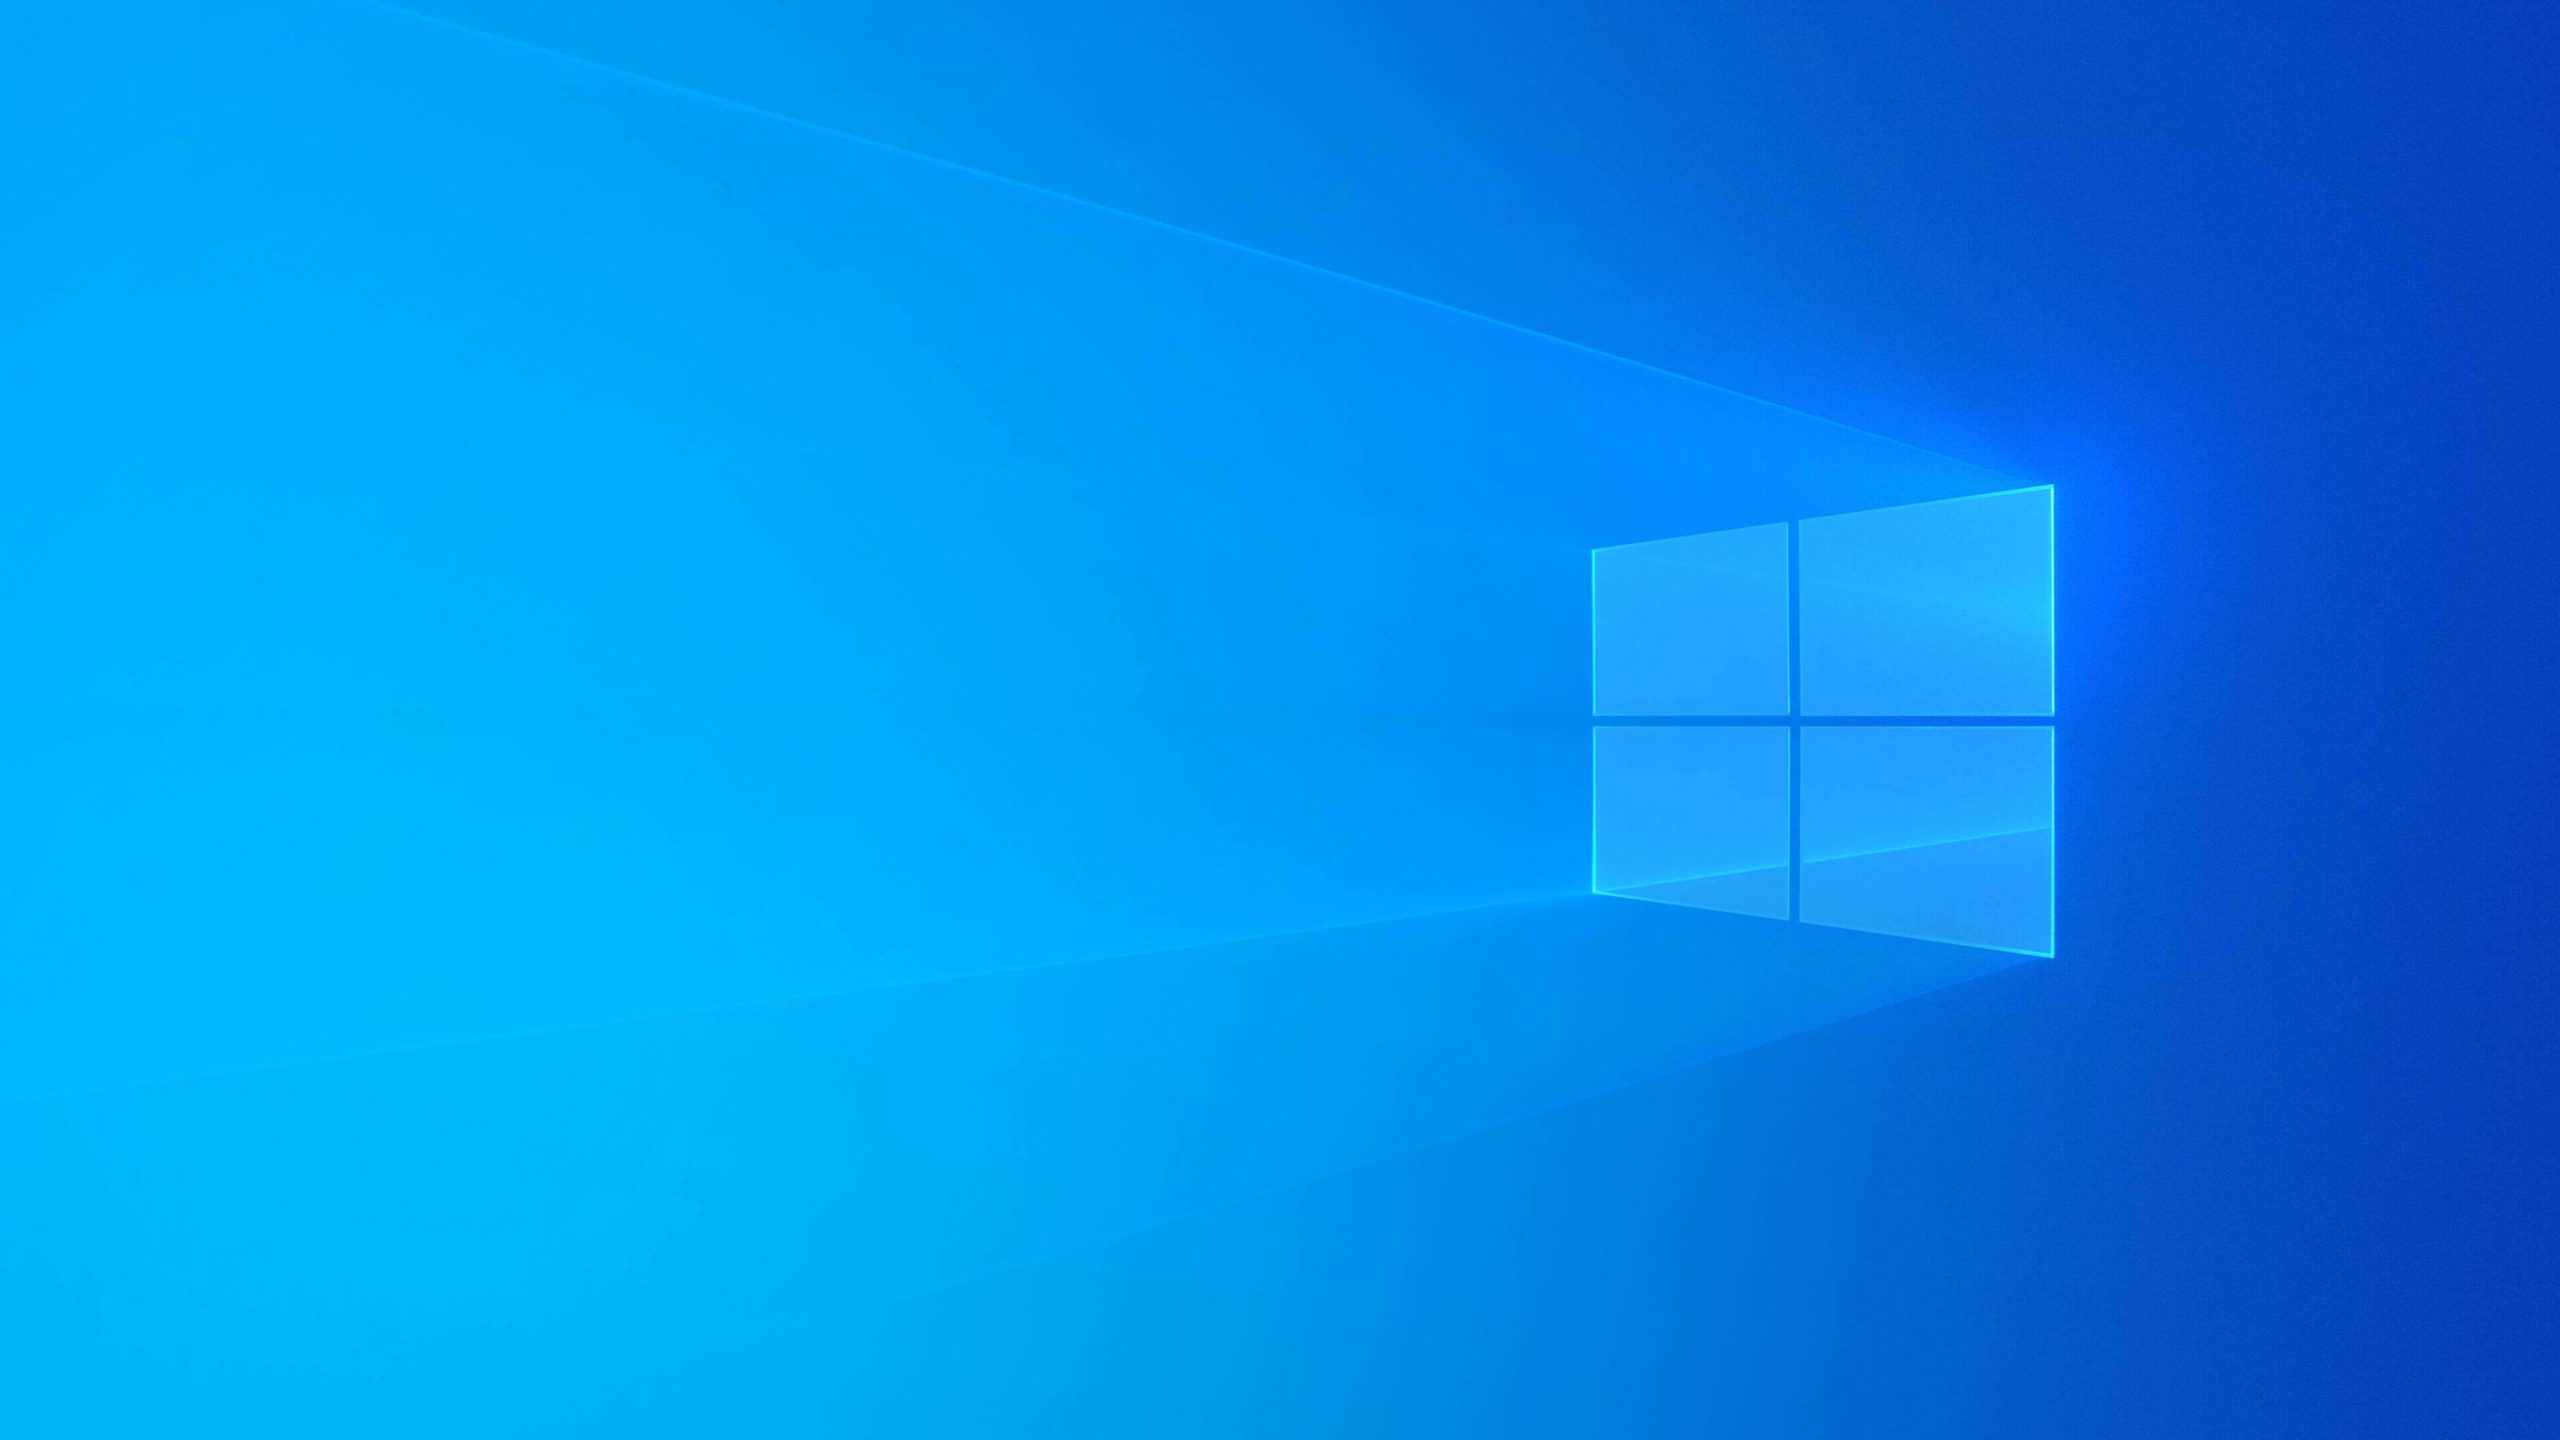 Windows 10 Light Mode wallpaper